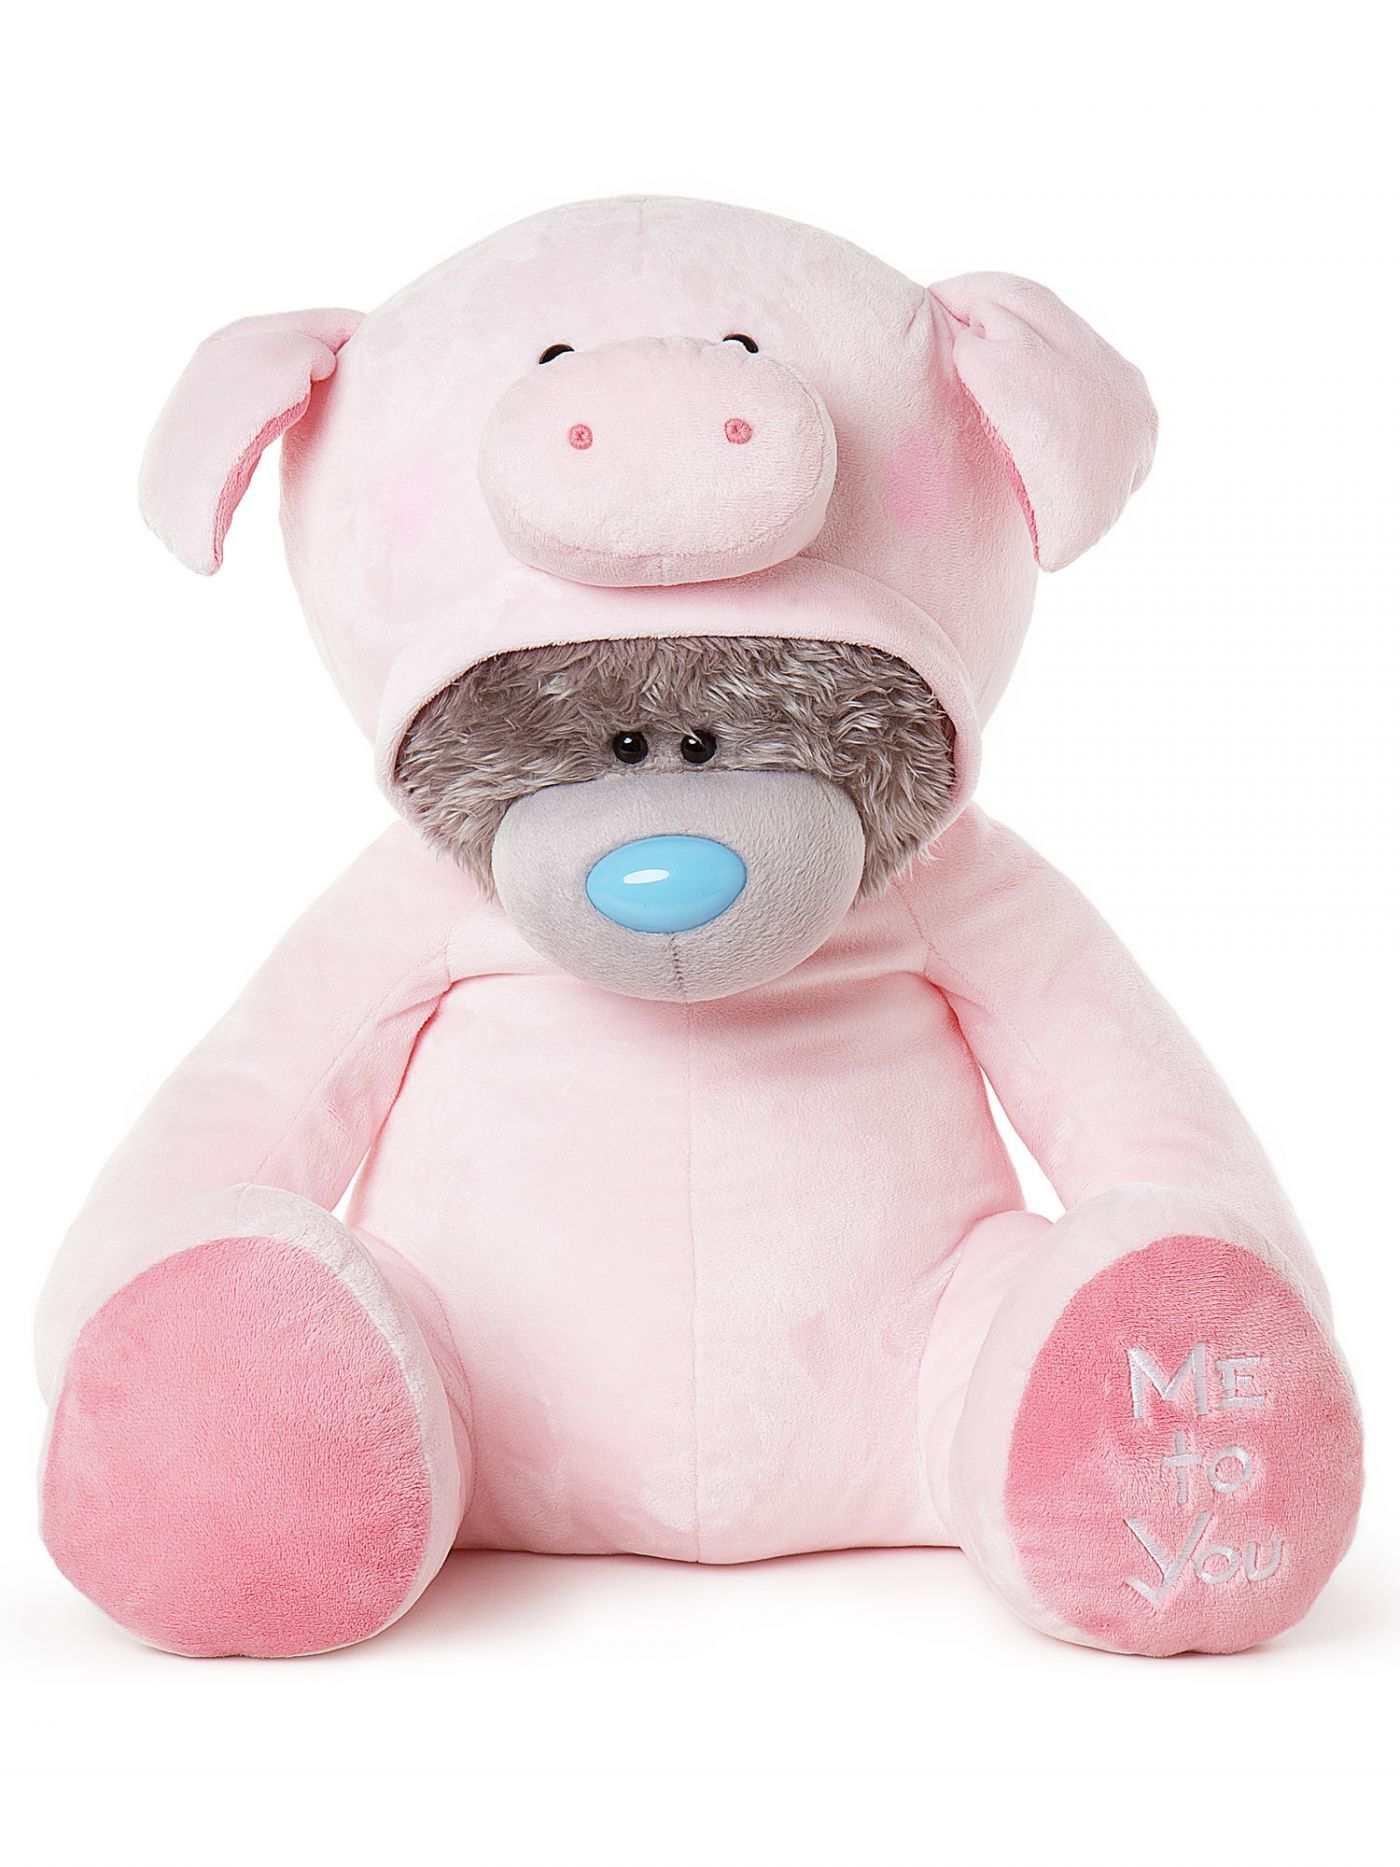 Me To You 24 Pig Onesie Plush Bear Gifts For Her Gifts